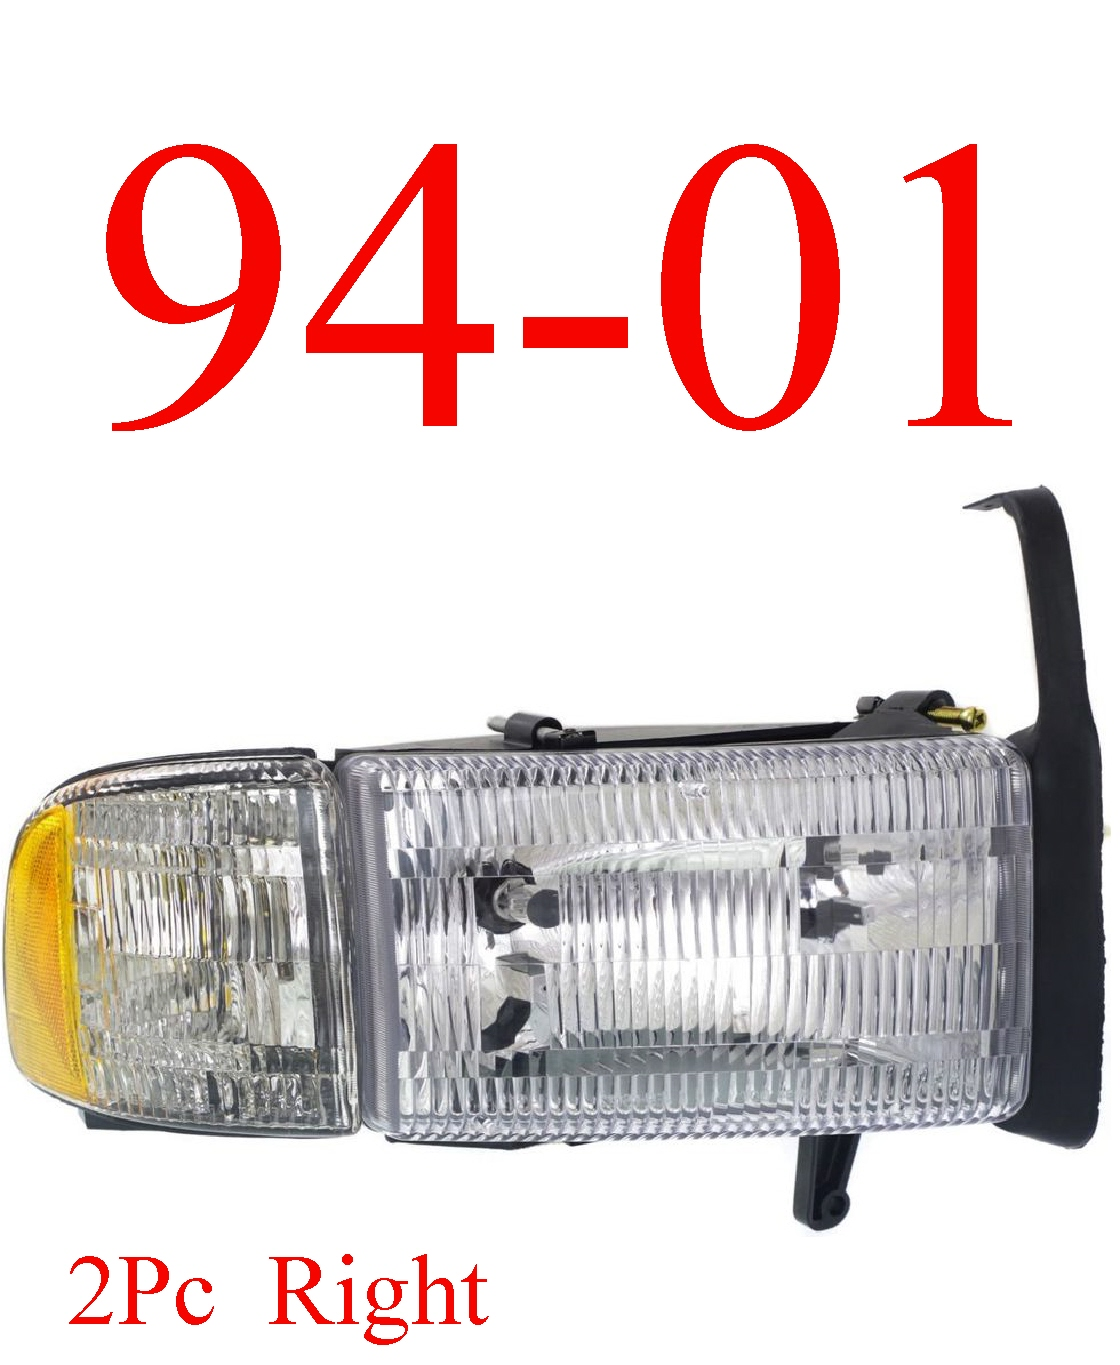 94-01 Dodge 2Pc Right Head Light Assembly